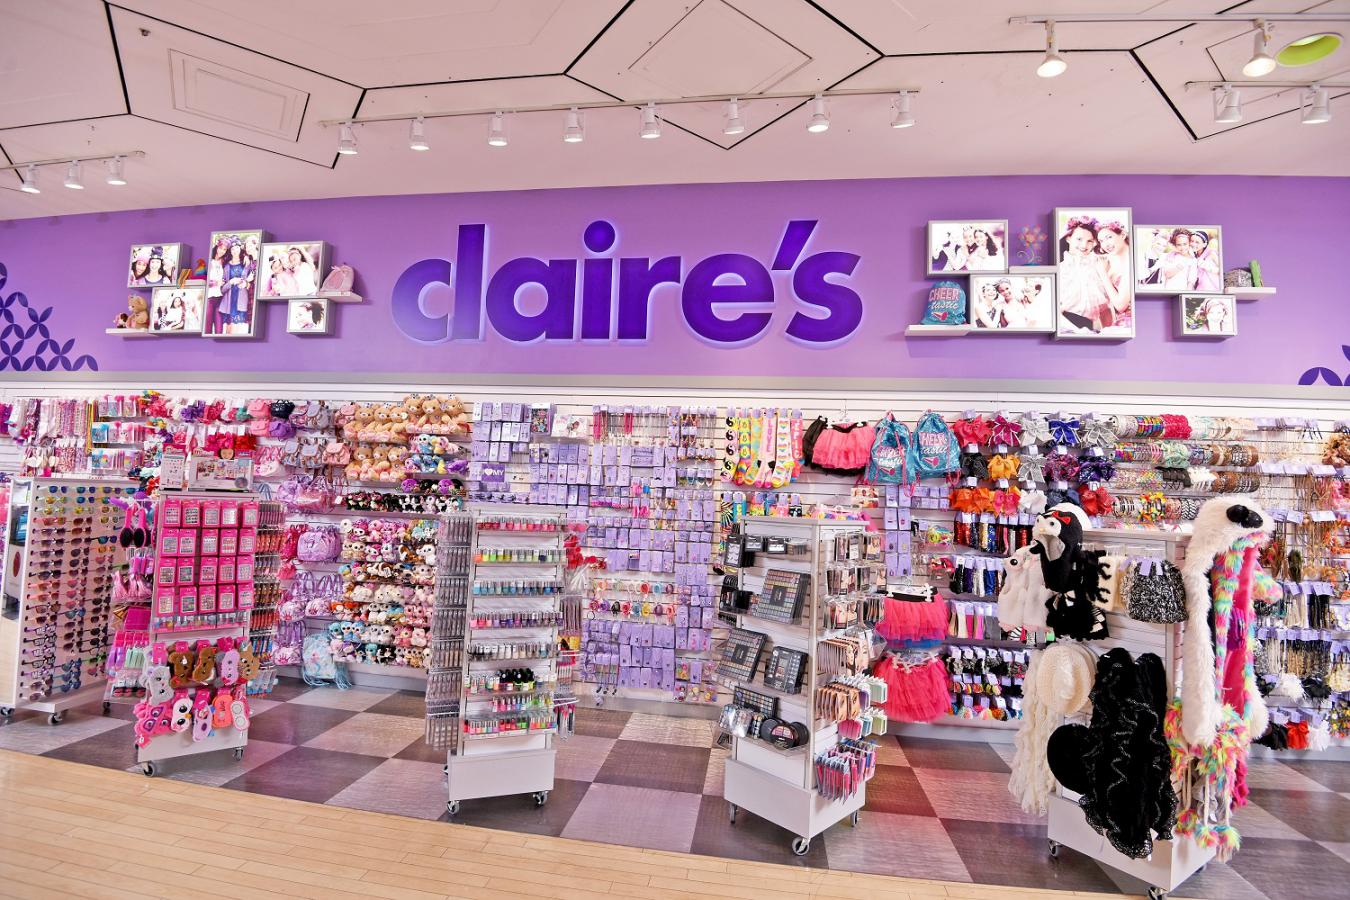 Make-up products sold by fashion accessory chain Claire's have been found to contain asbestos